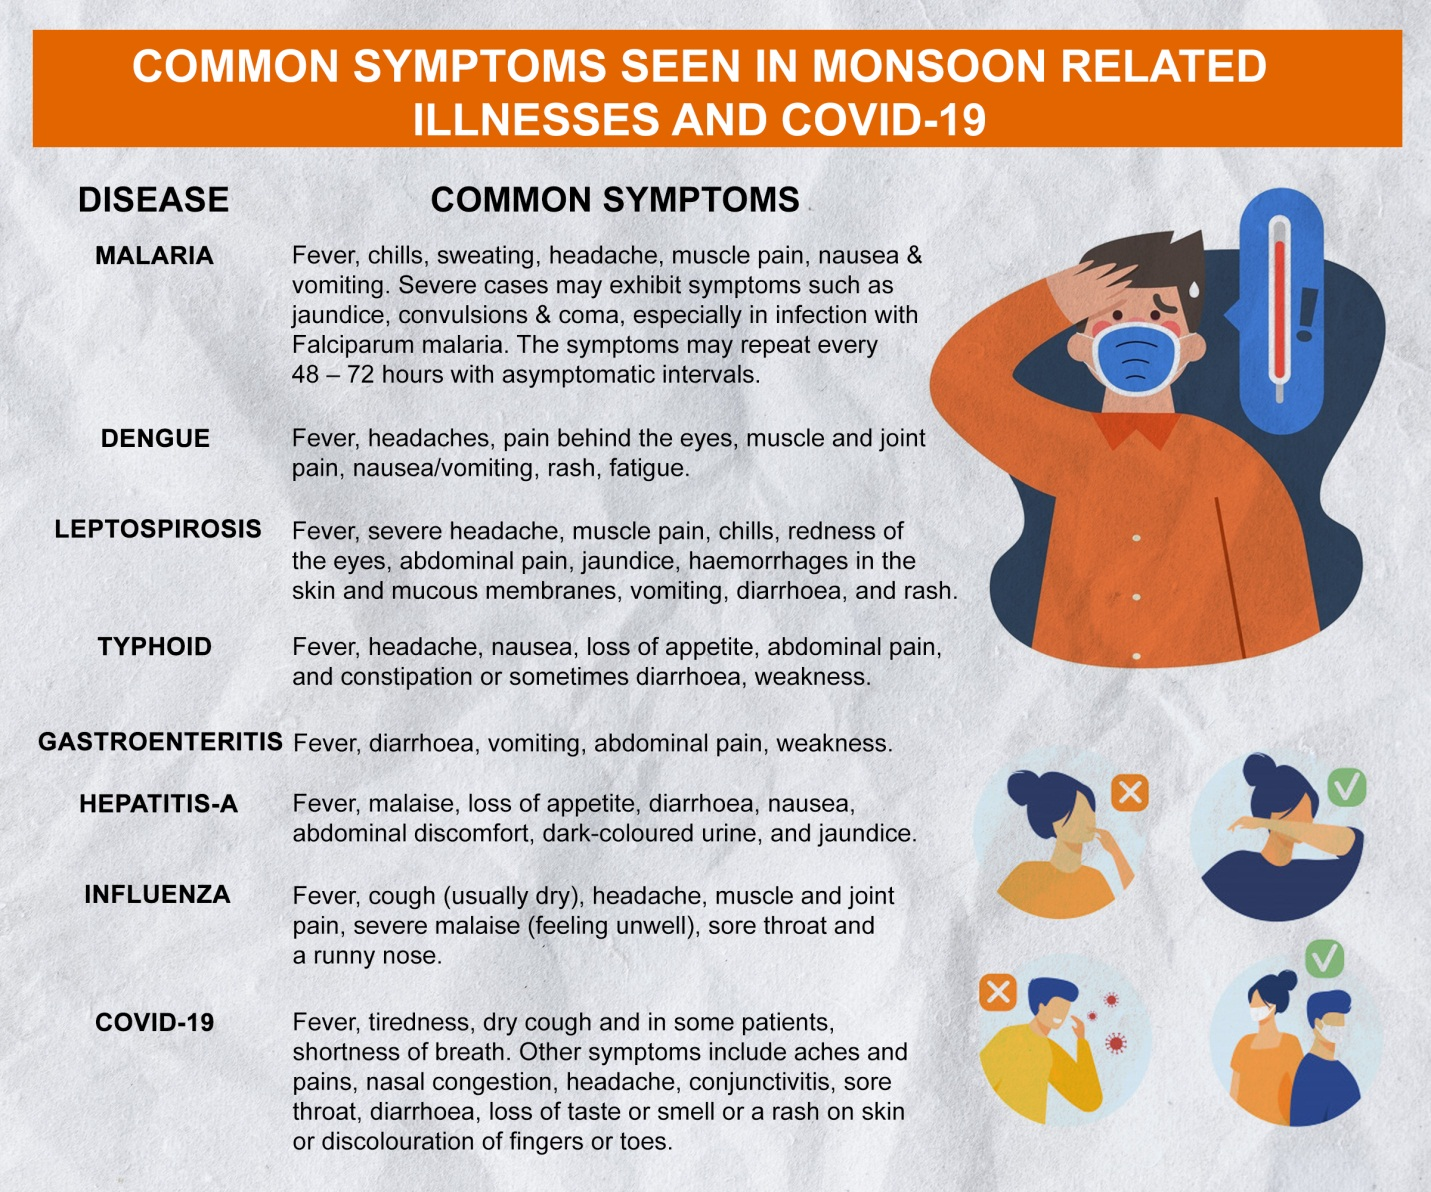 Symptoms In Monsoon Related Illnesses and COVID-19